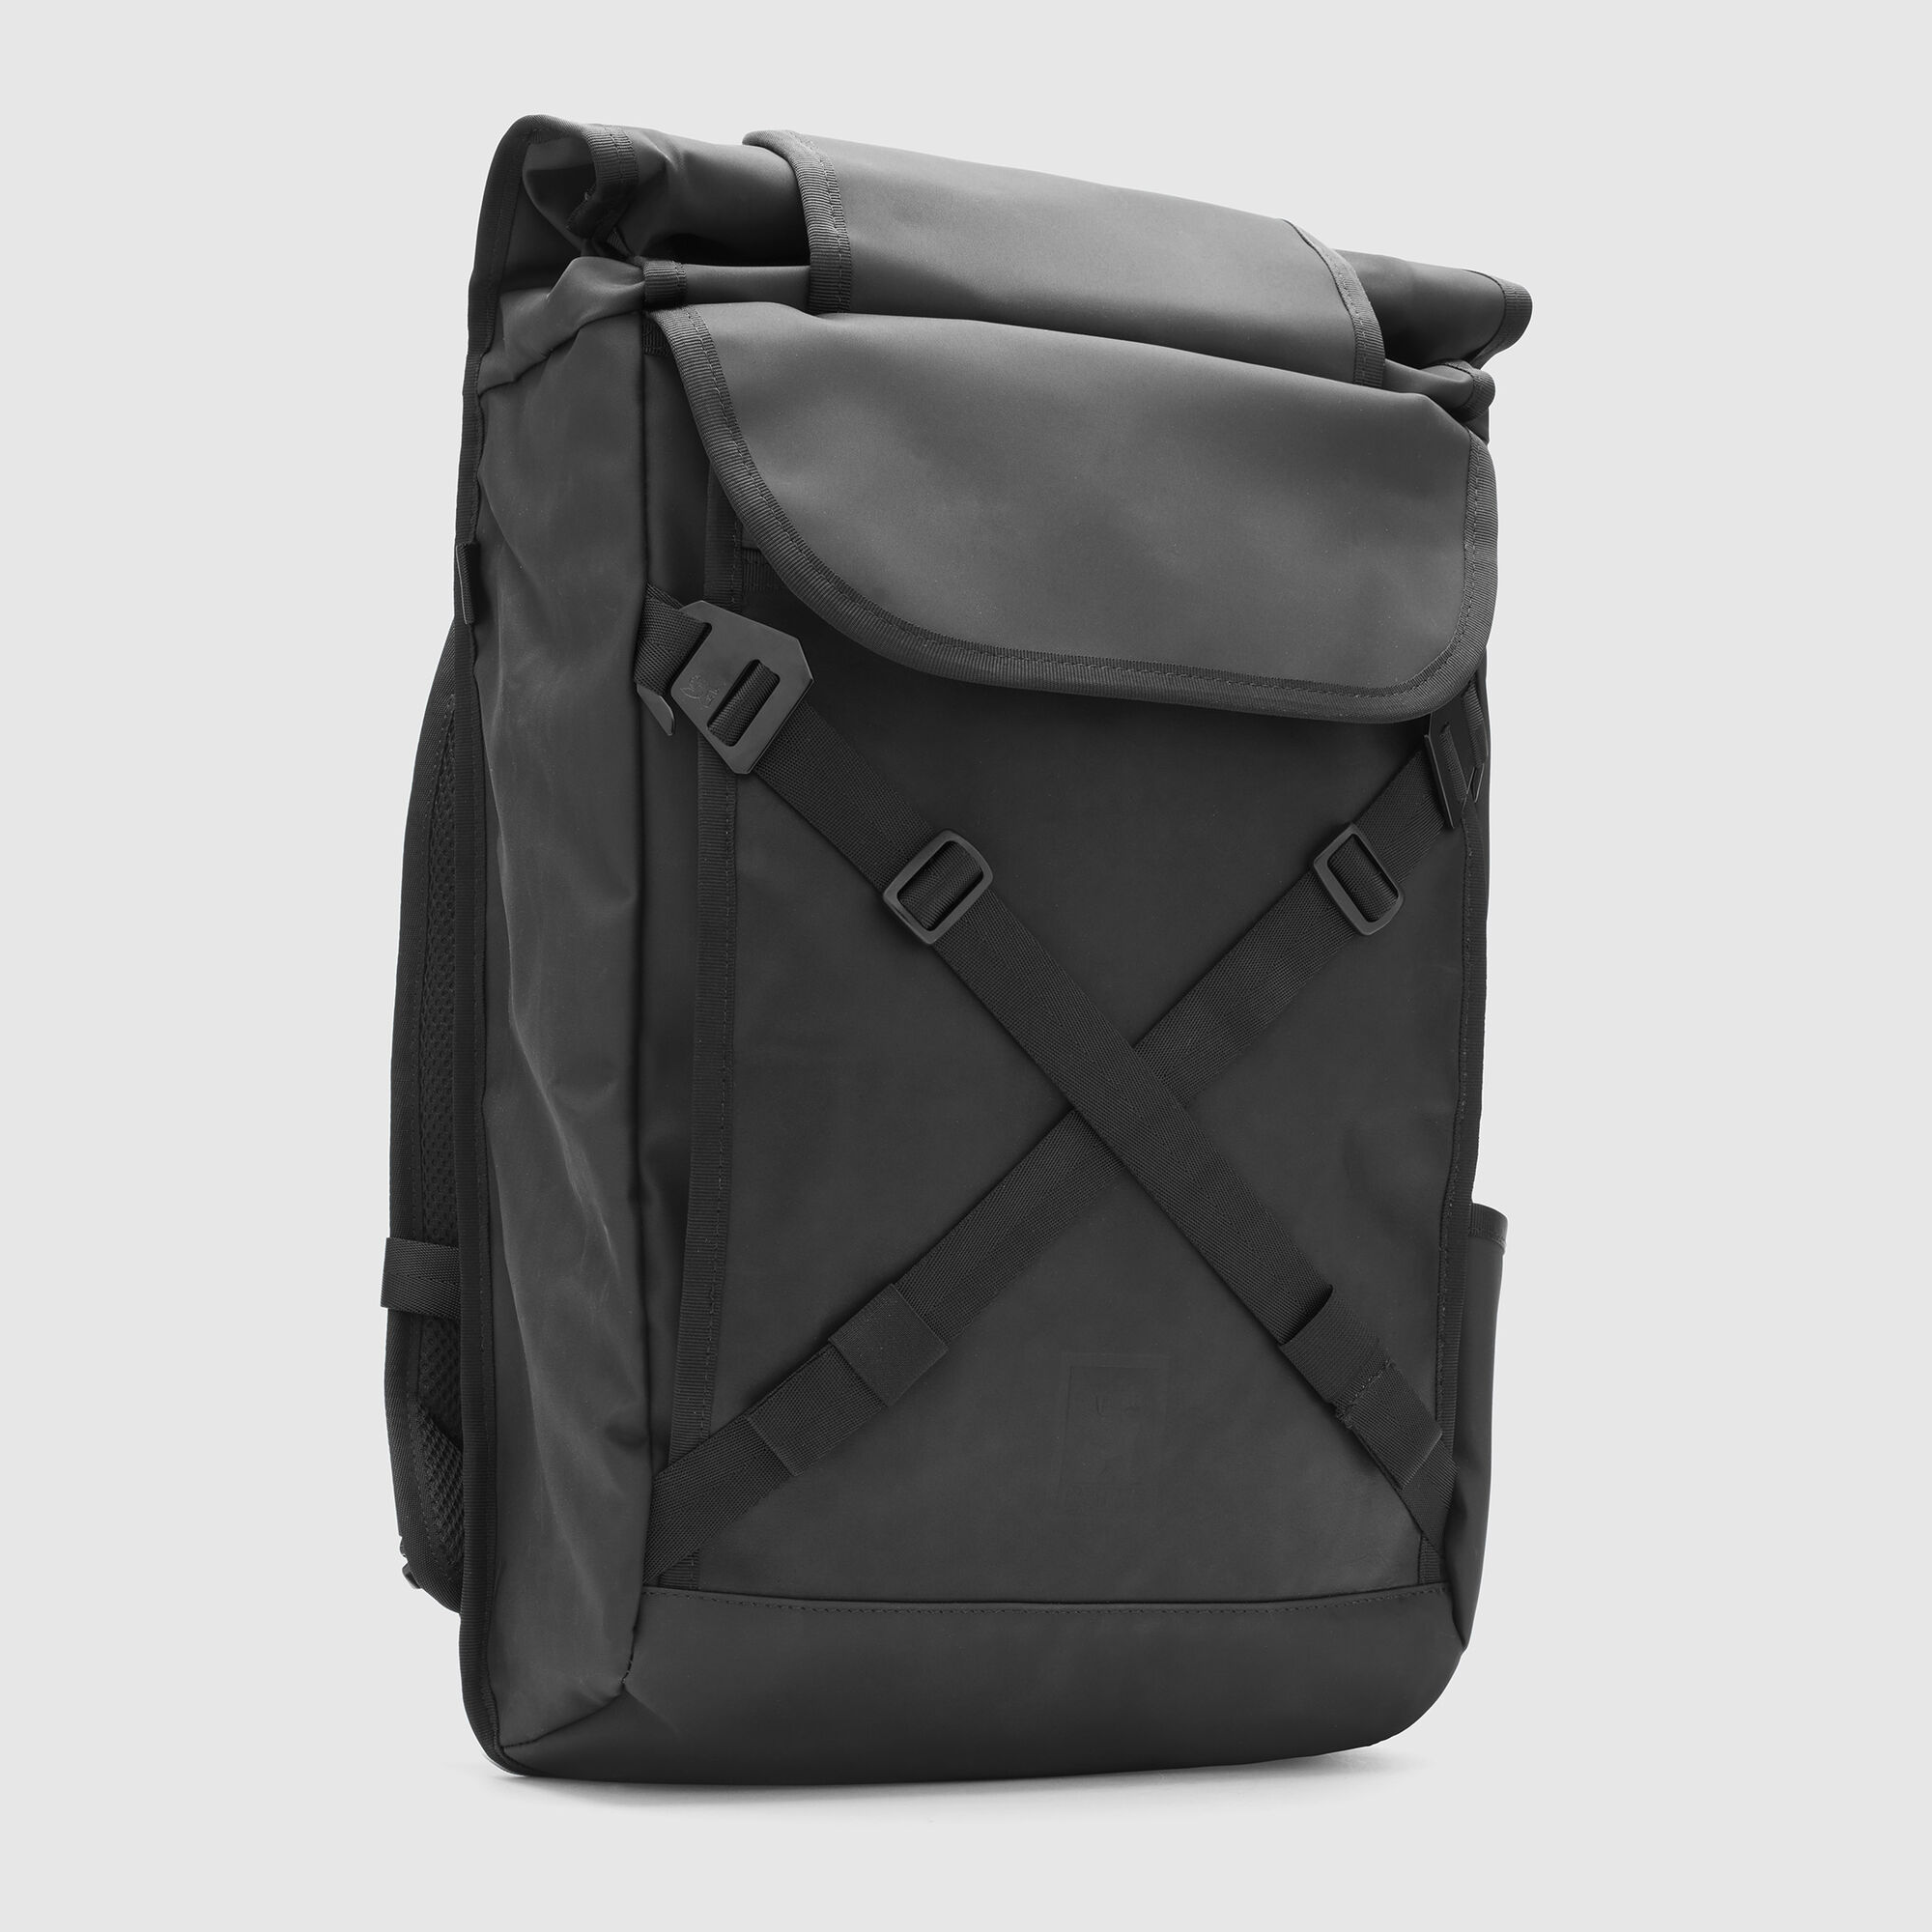 Blckchrm Bravo 2 0 Backpack In Small View